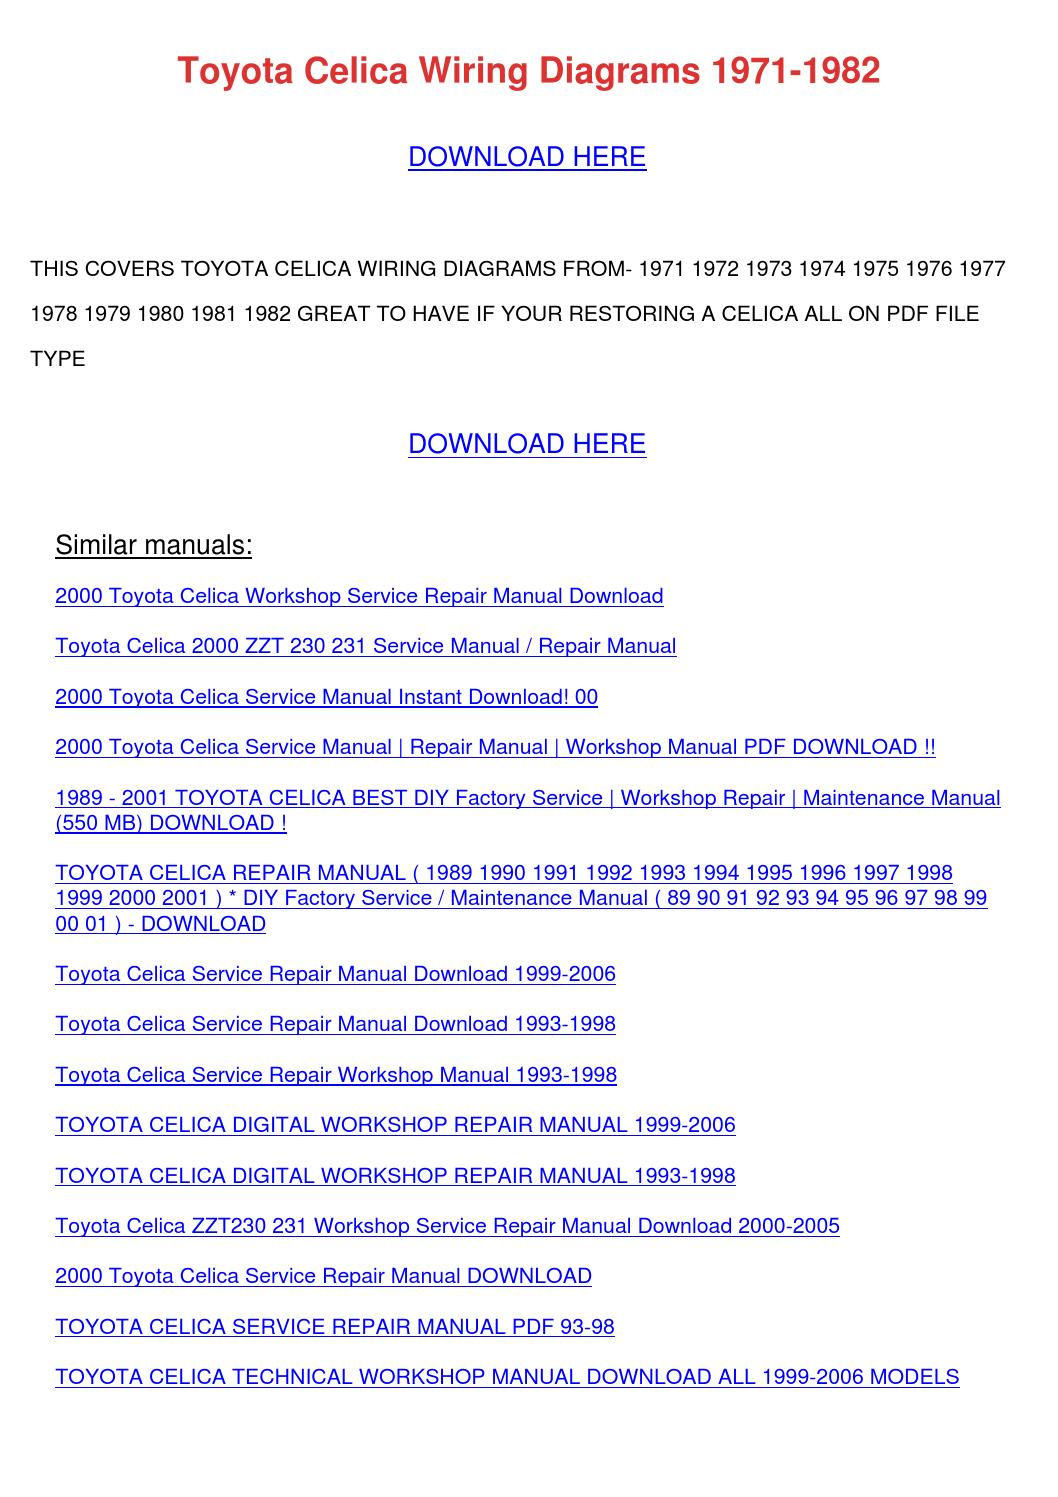 Diagram Toyota Celica Wiring Diagrams 1971 1982 Full Version Hd Quality 1971 1982 143469 Vincentescrive Fr